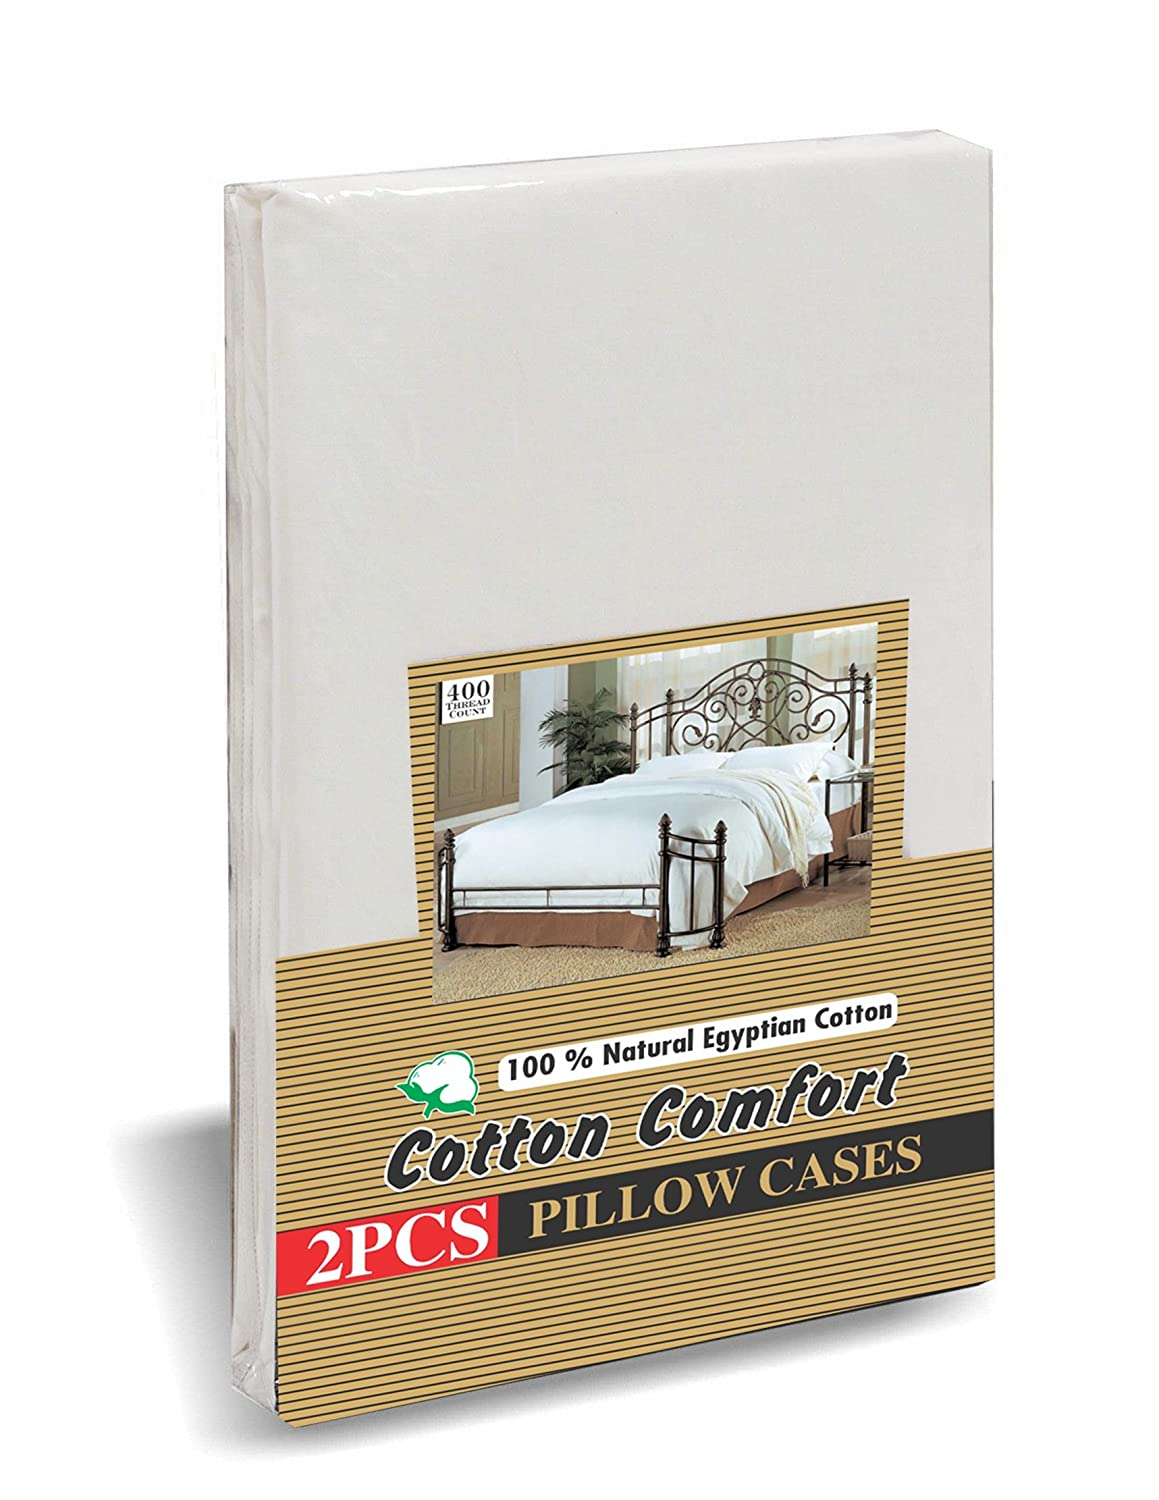 Cotton Comfort Pillow Cases 400 Thread Count 100% Egyptian Cotton, White, Pack Of 2